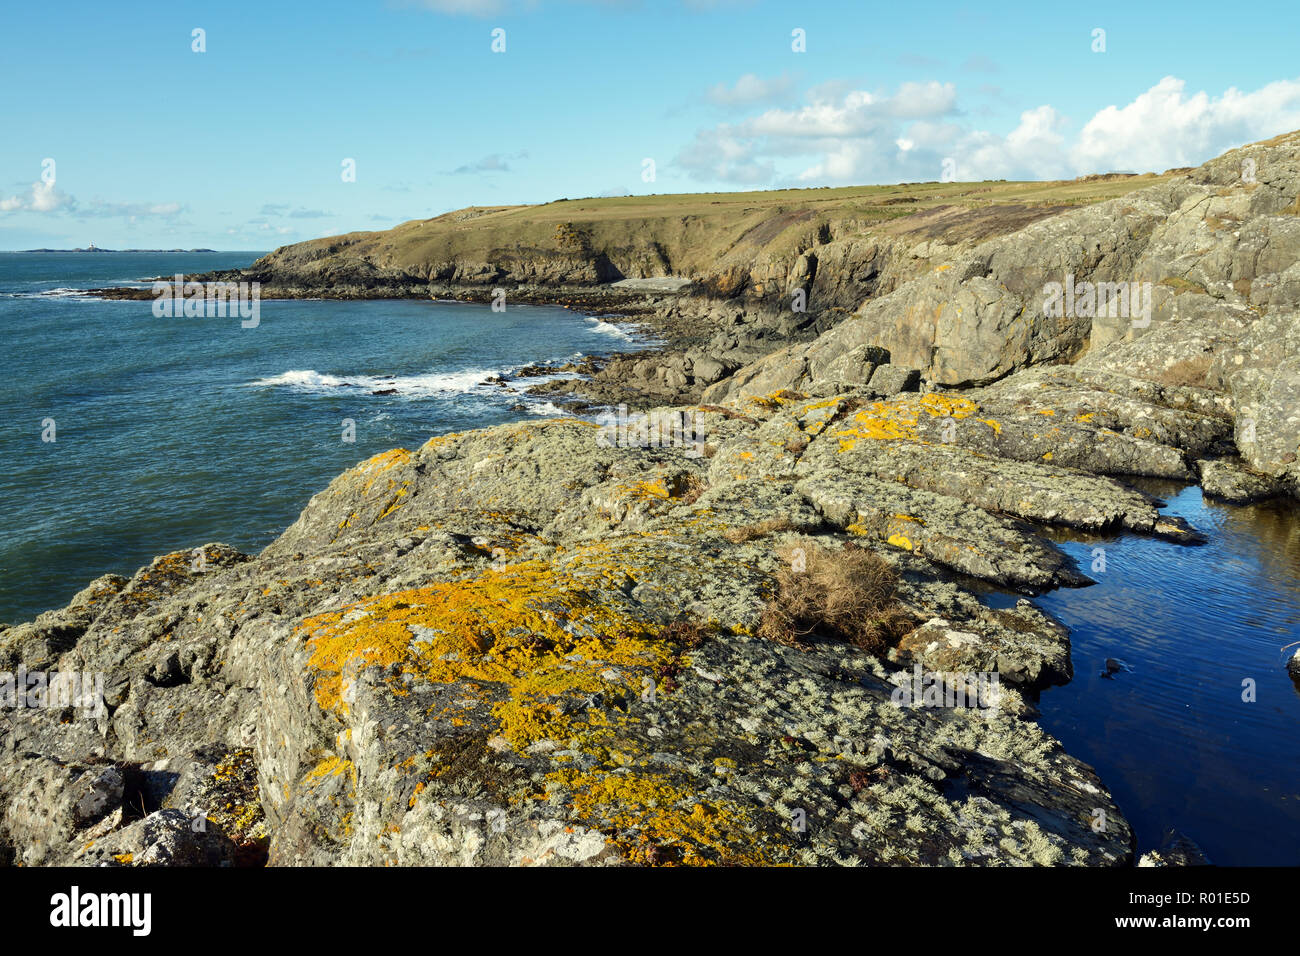 Carmel Head is a coastal headland on the north western side of Anglesey in North Wales. It is designated a SSSI for its geological interest. - Stock Image